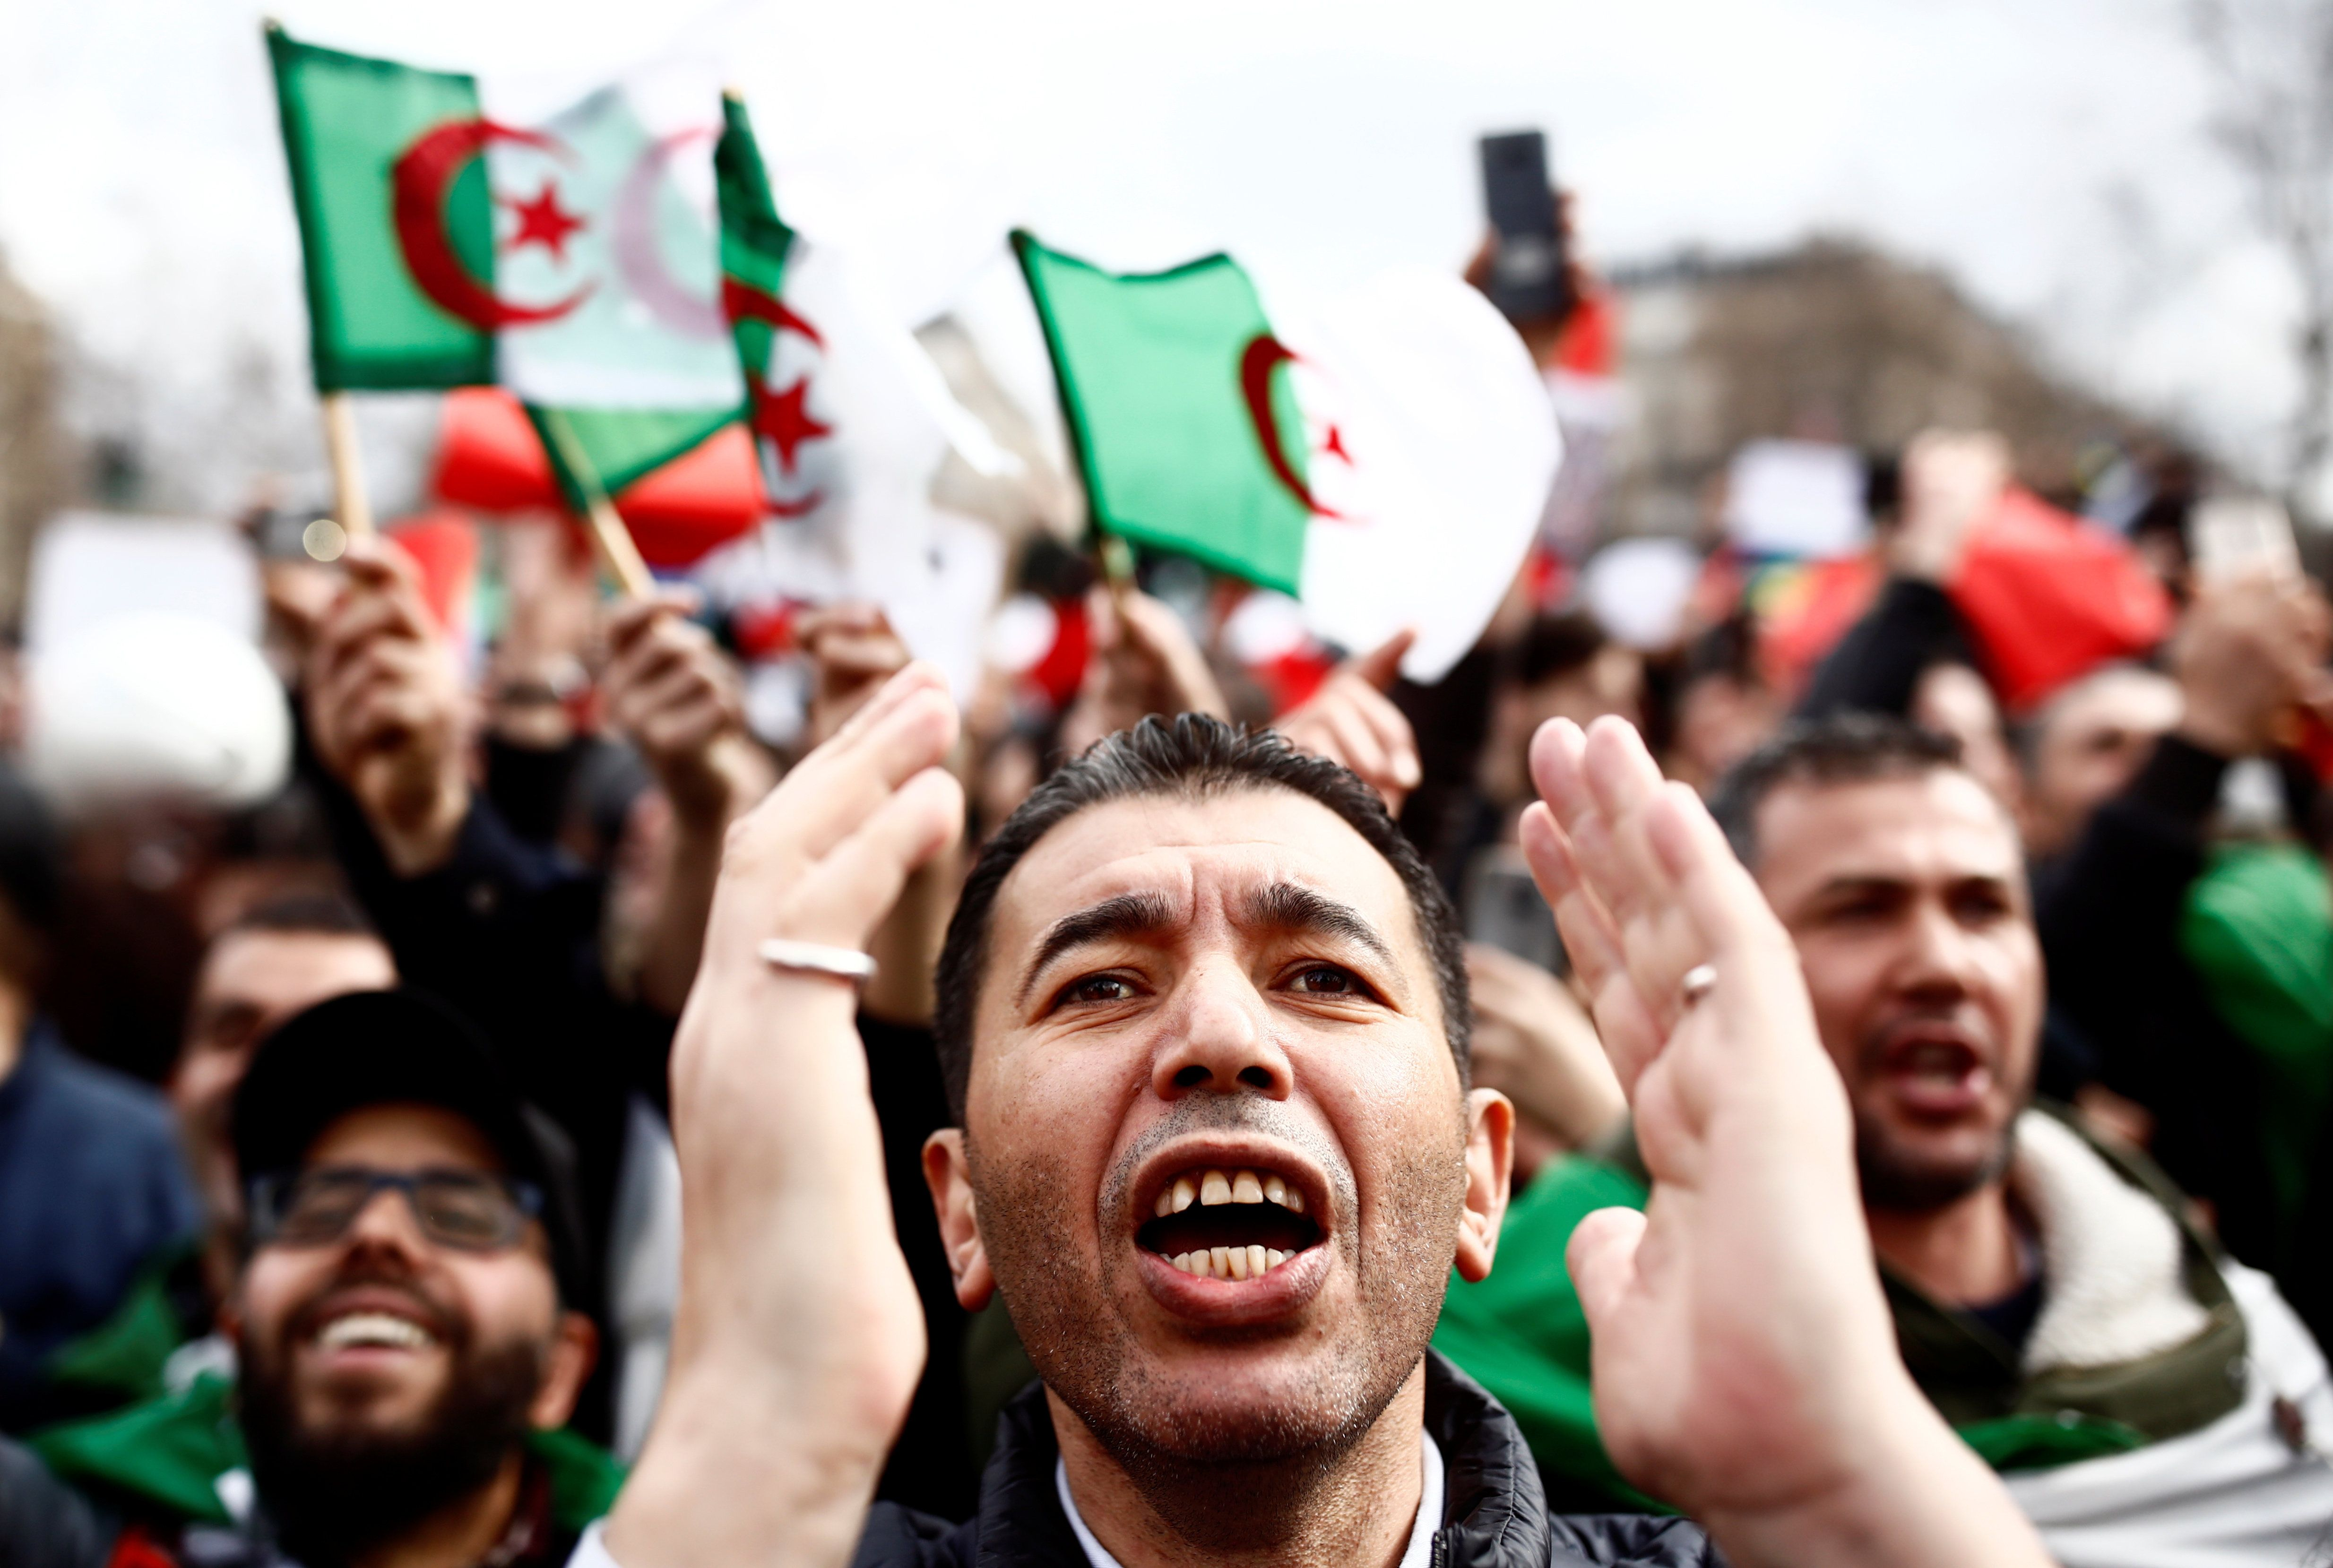 ALGERIA: TAKING DOWN A PICTURE FRAME